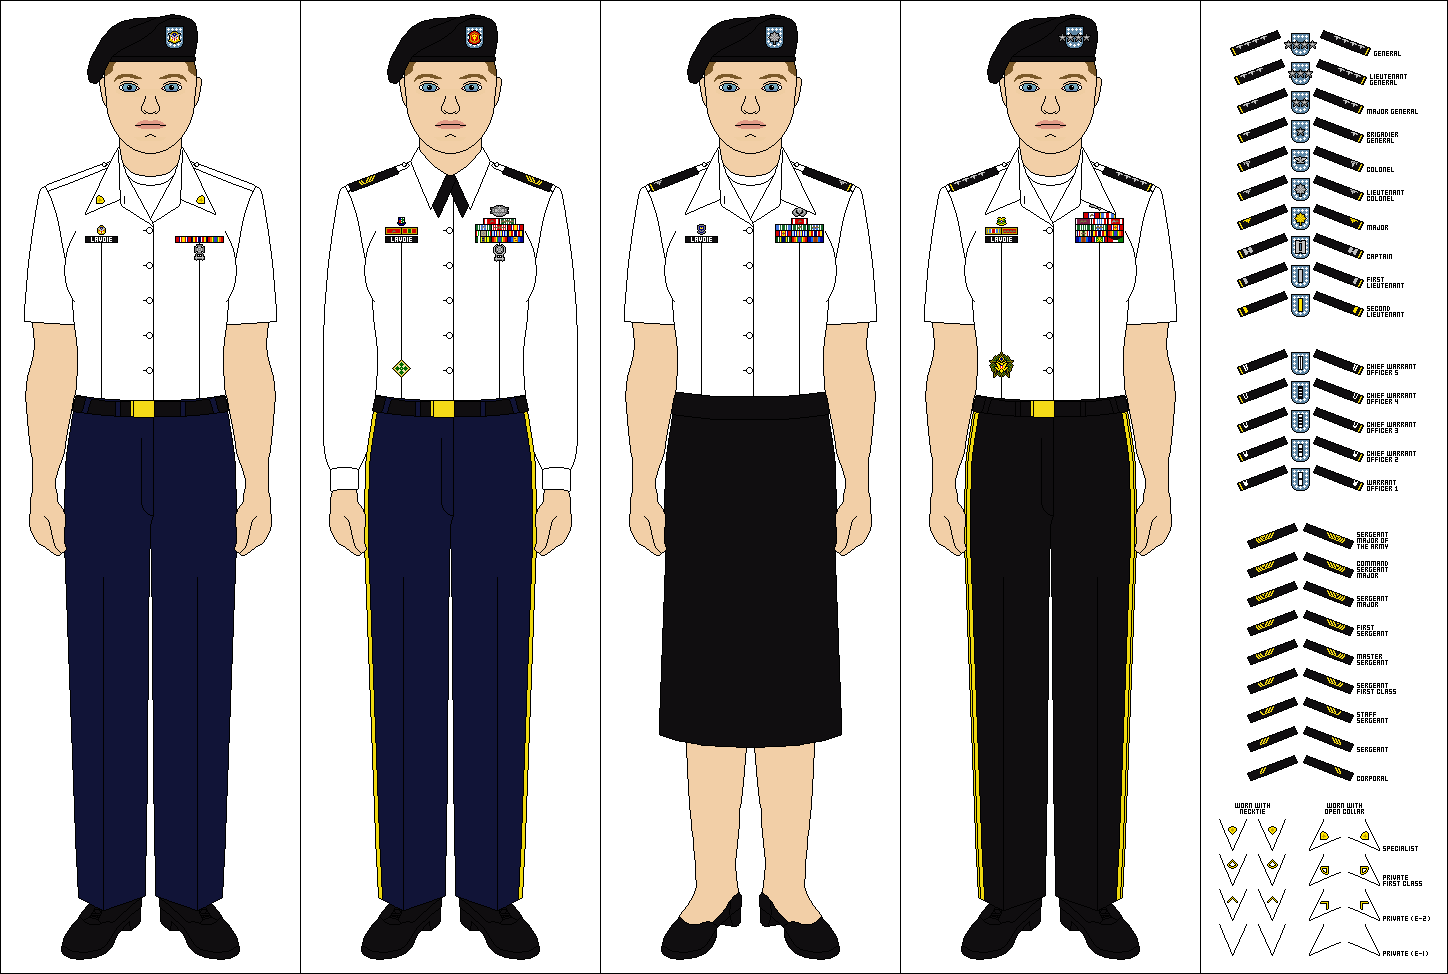 U. S. Army Uniforms